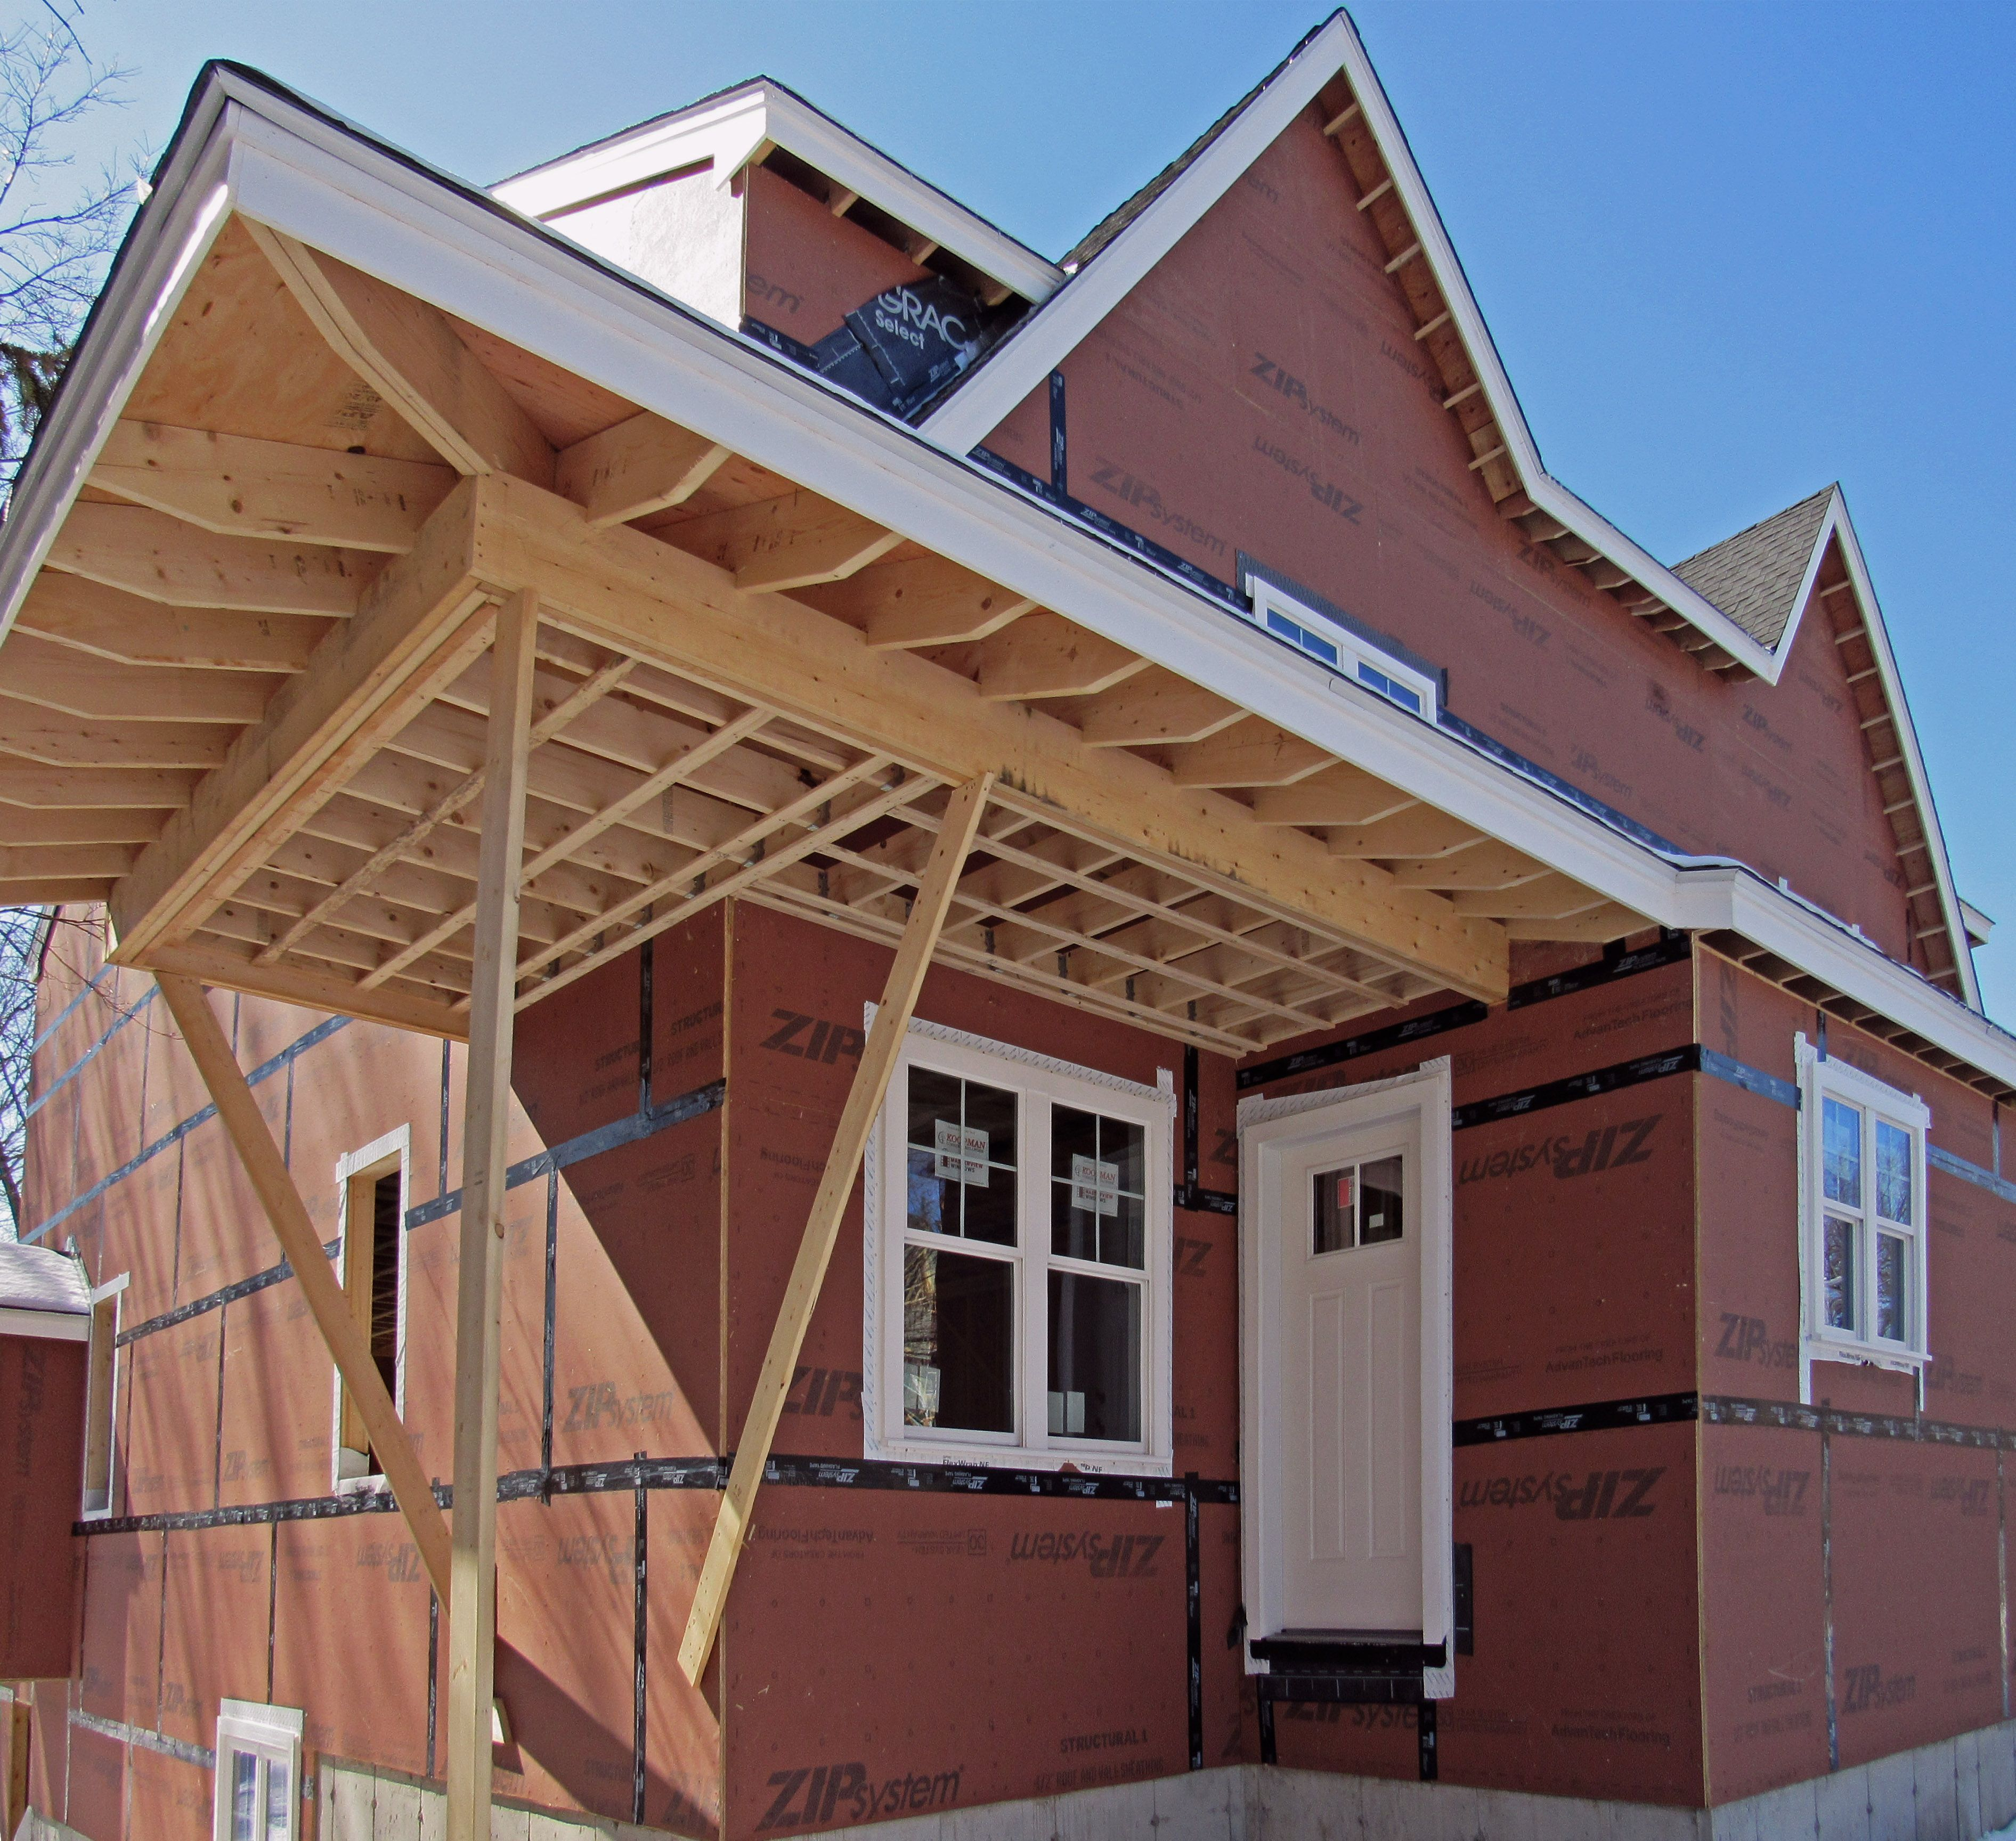 New Residential Condominiums Under Construction Building A Deck Frame Building A Deck Roofing Options